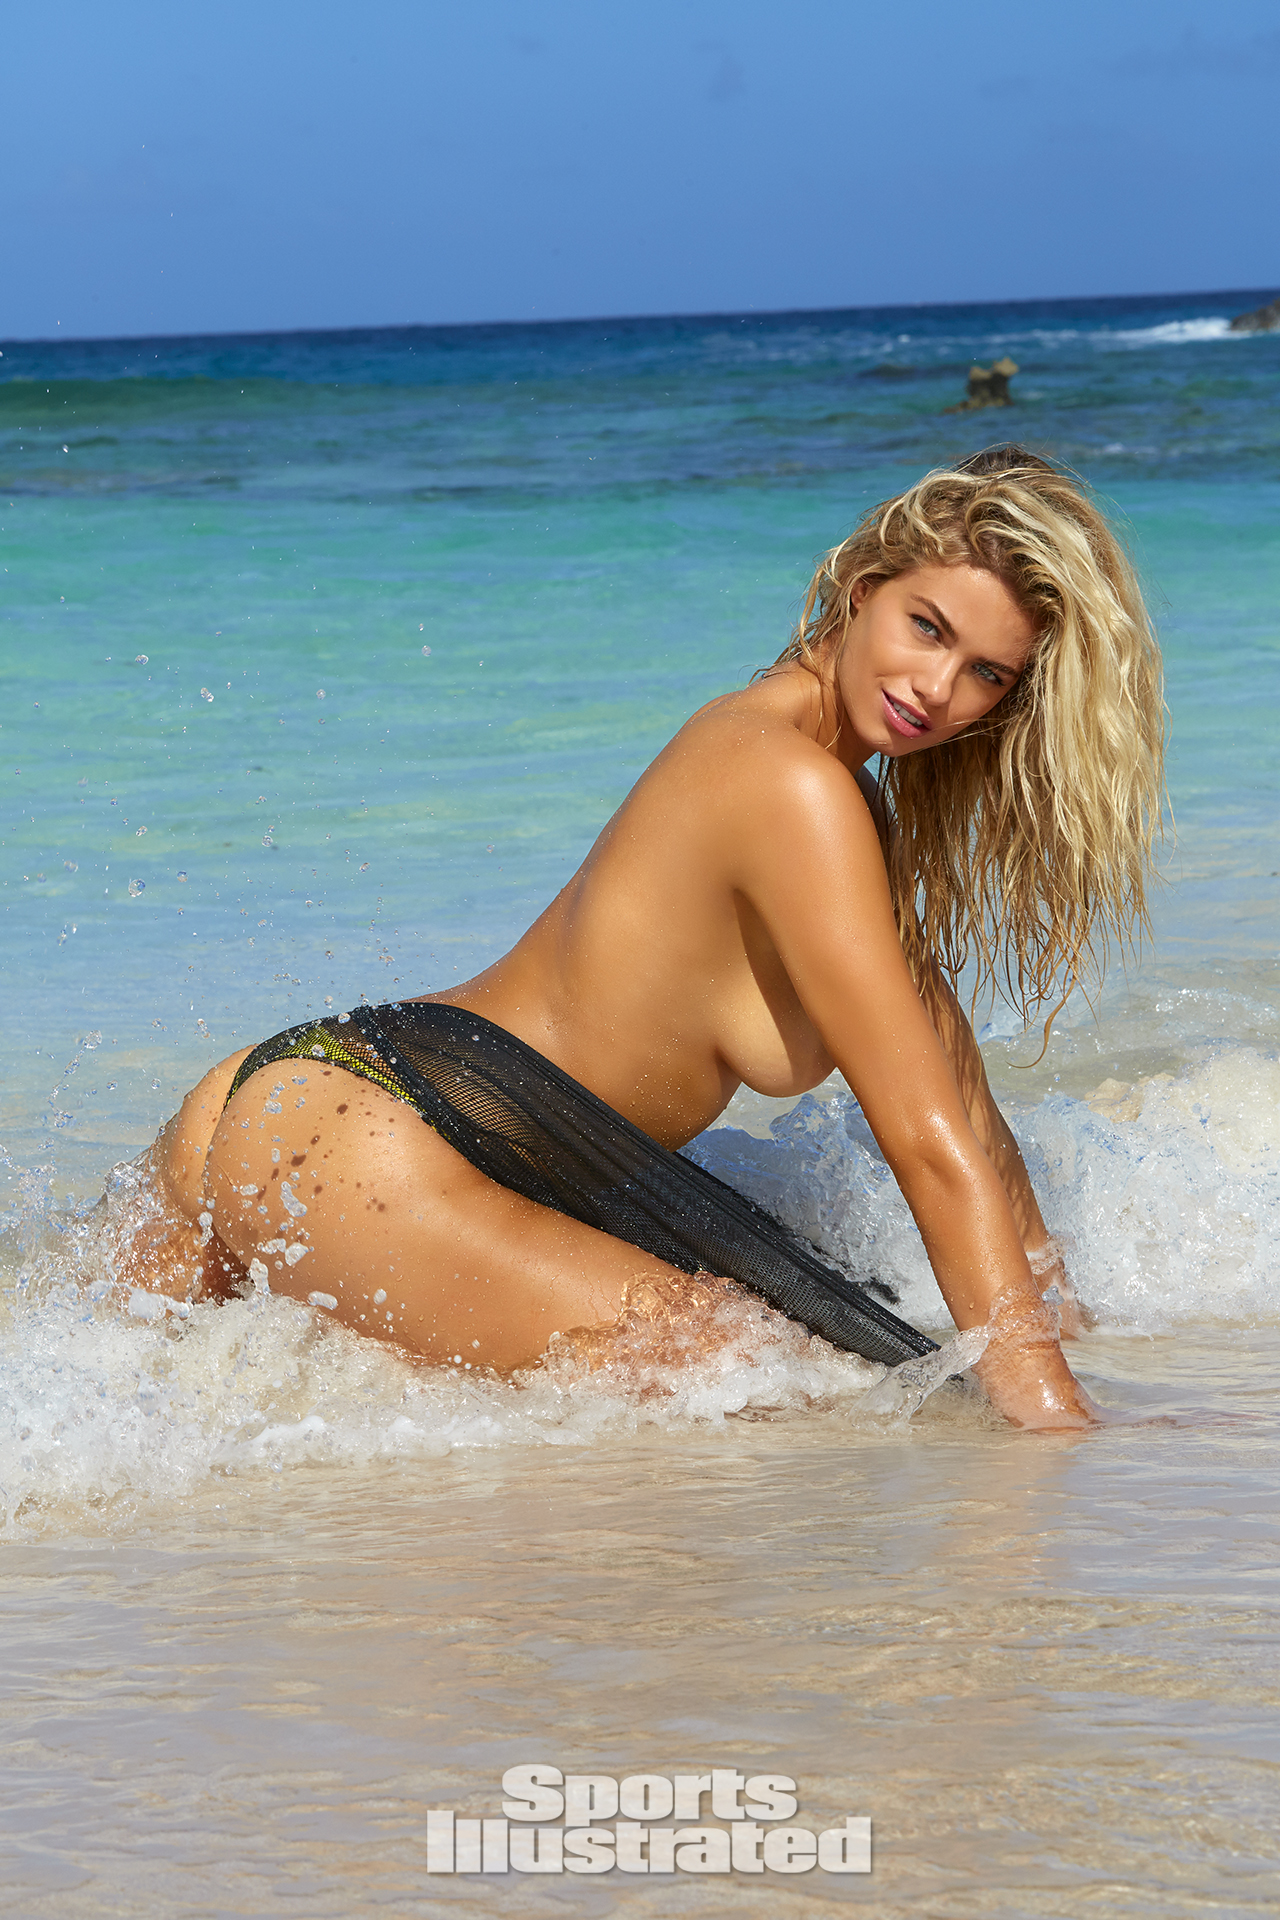 Hailey Clauson was photographed by James Macari in Turks & Caicos. Top by Diesel. Swimsuit by Noe Garments